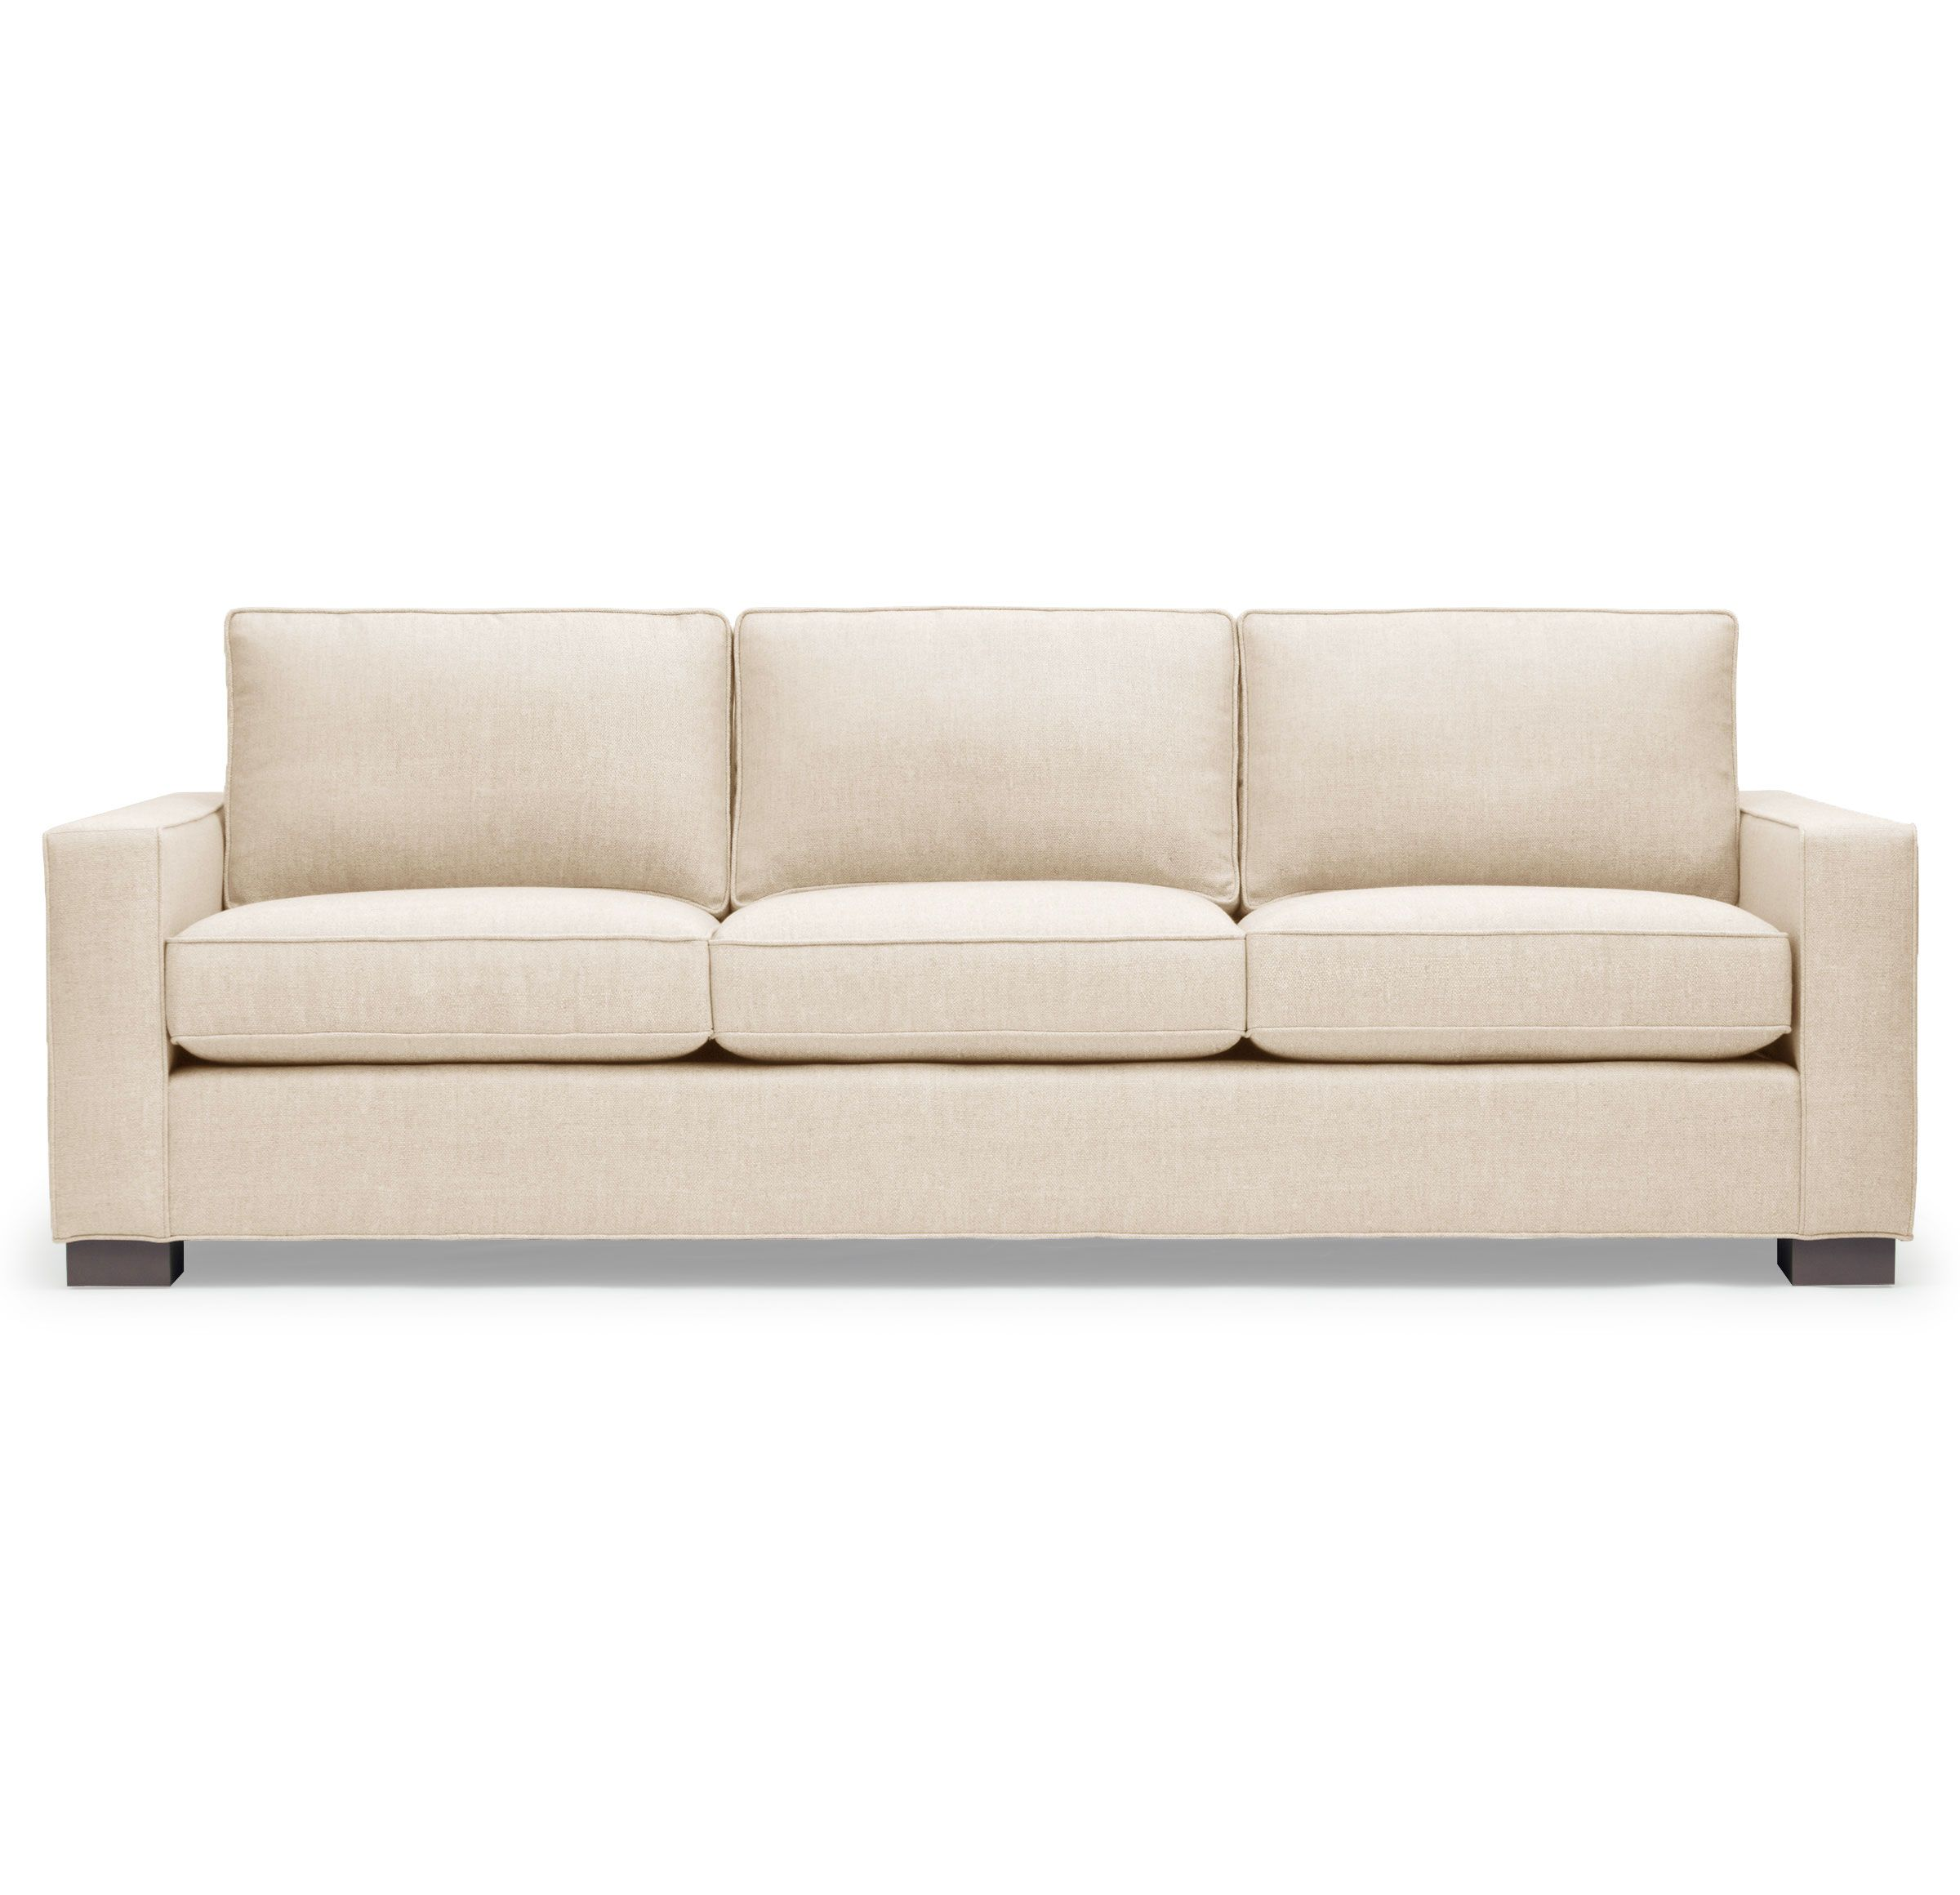 Carson 92 Sofa Coasta Cream In 2019 Products Sofa